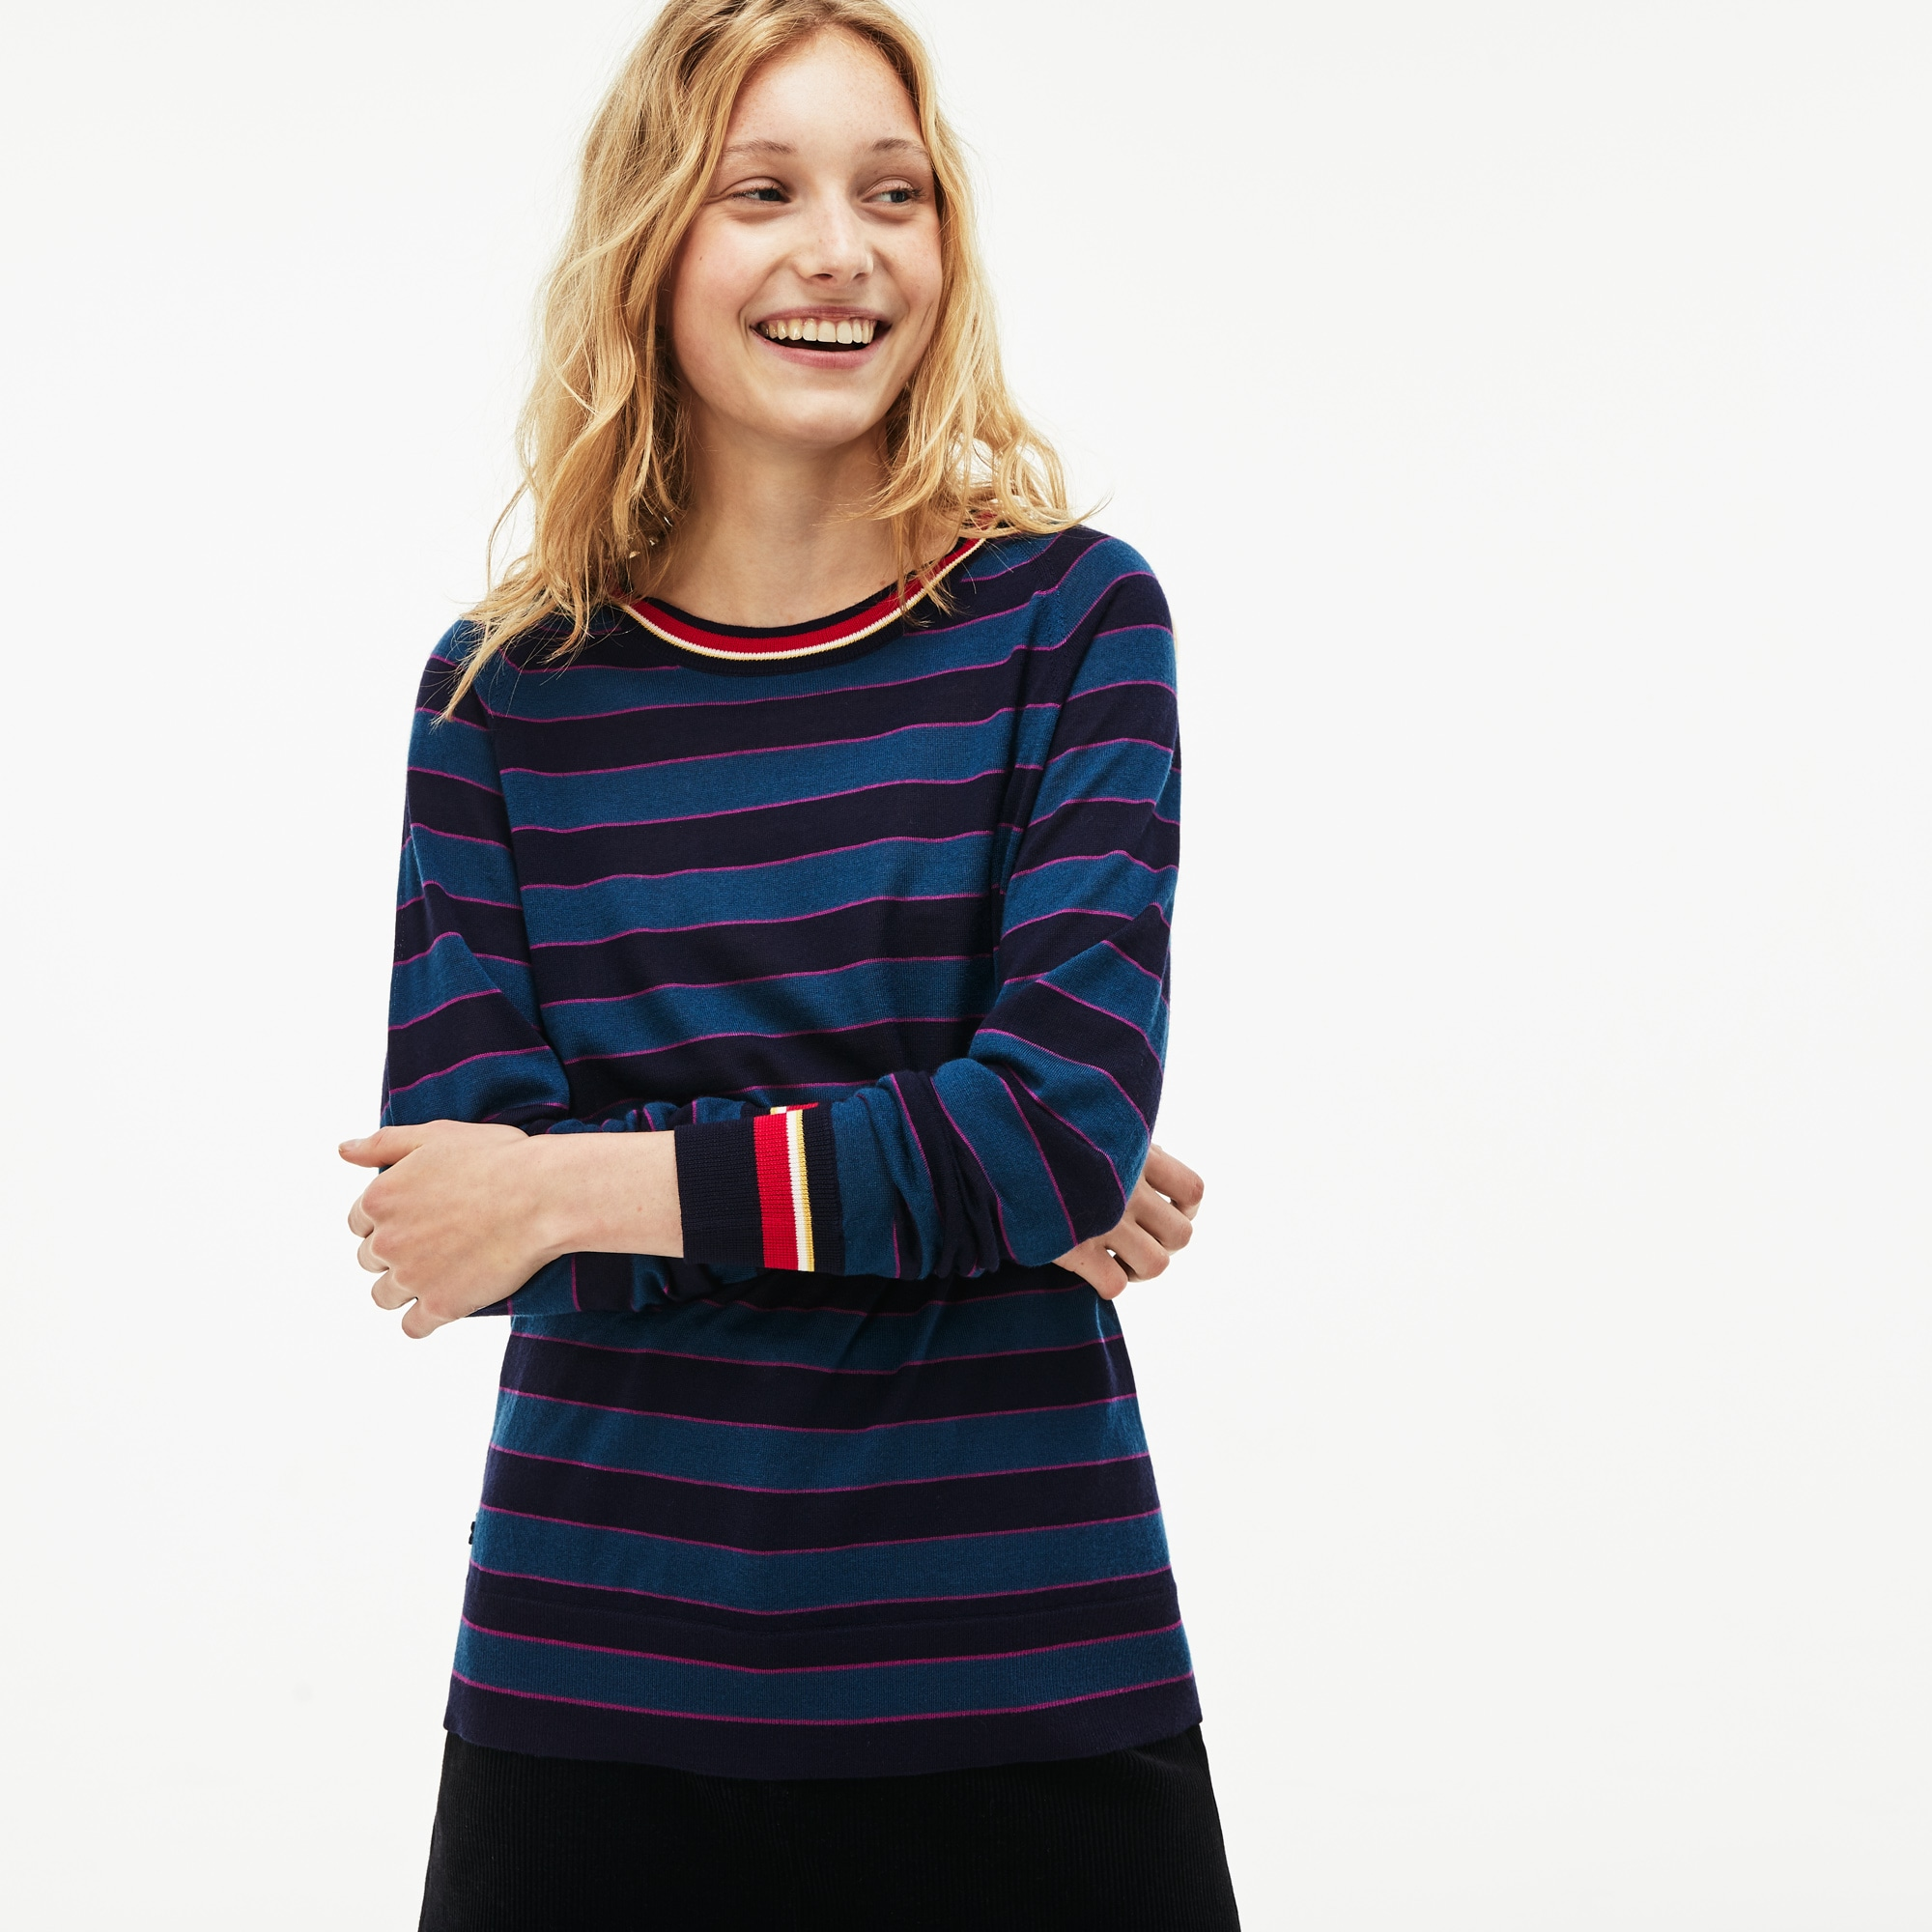 Women's Crew Neck Contrast Accent Striped Wool Jersey Sweater